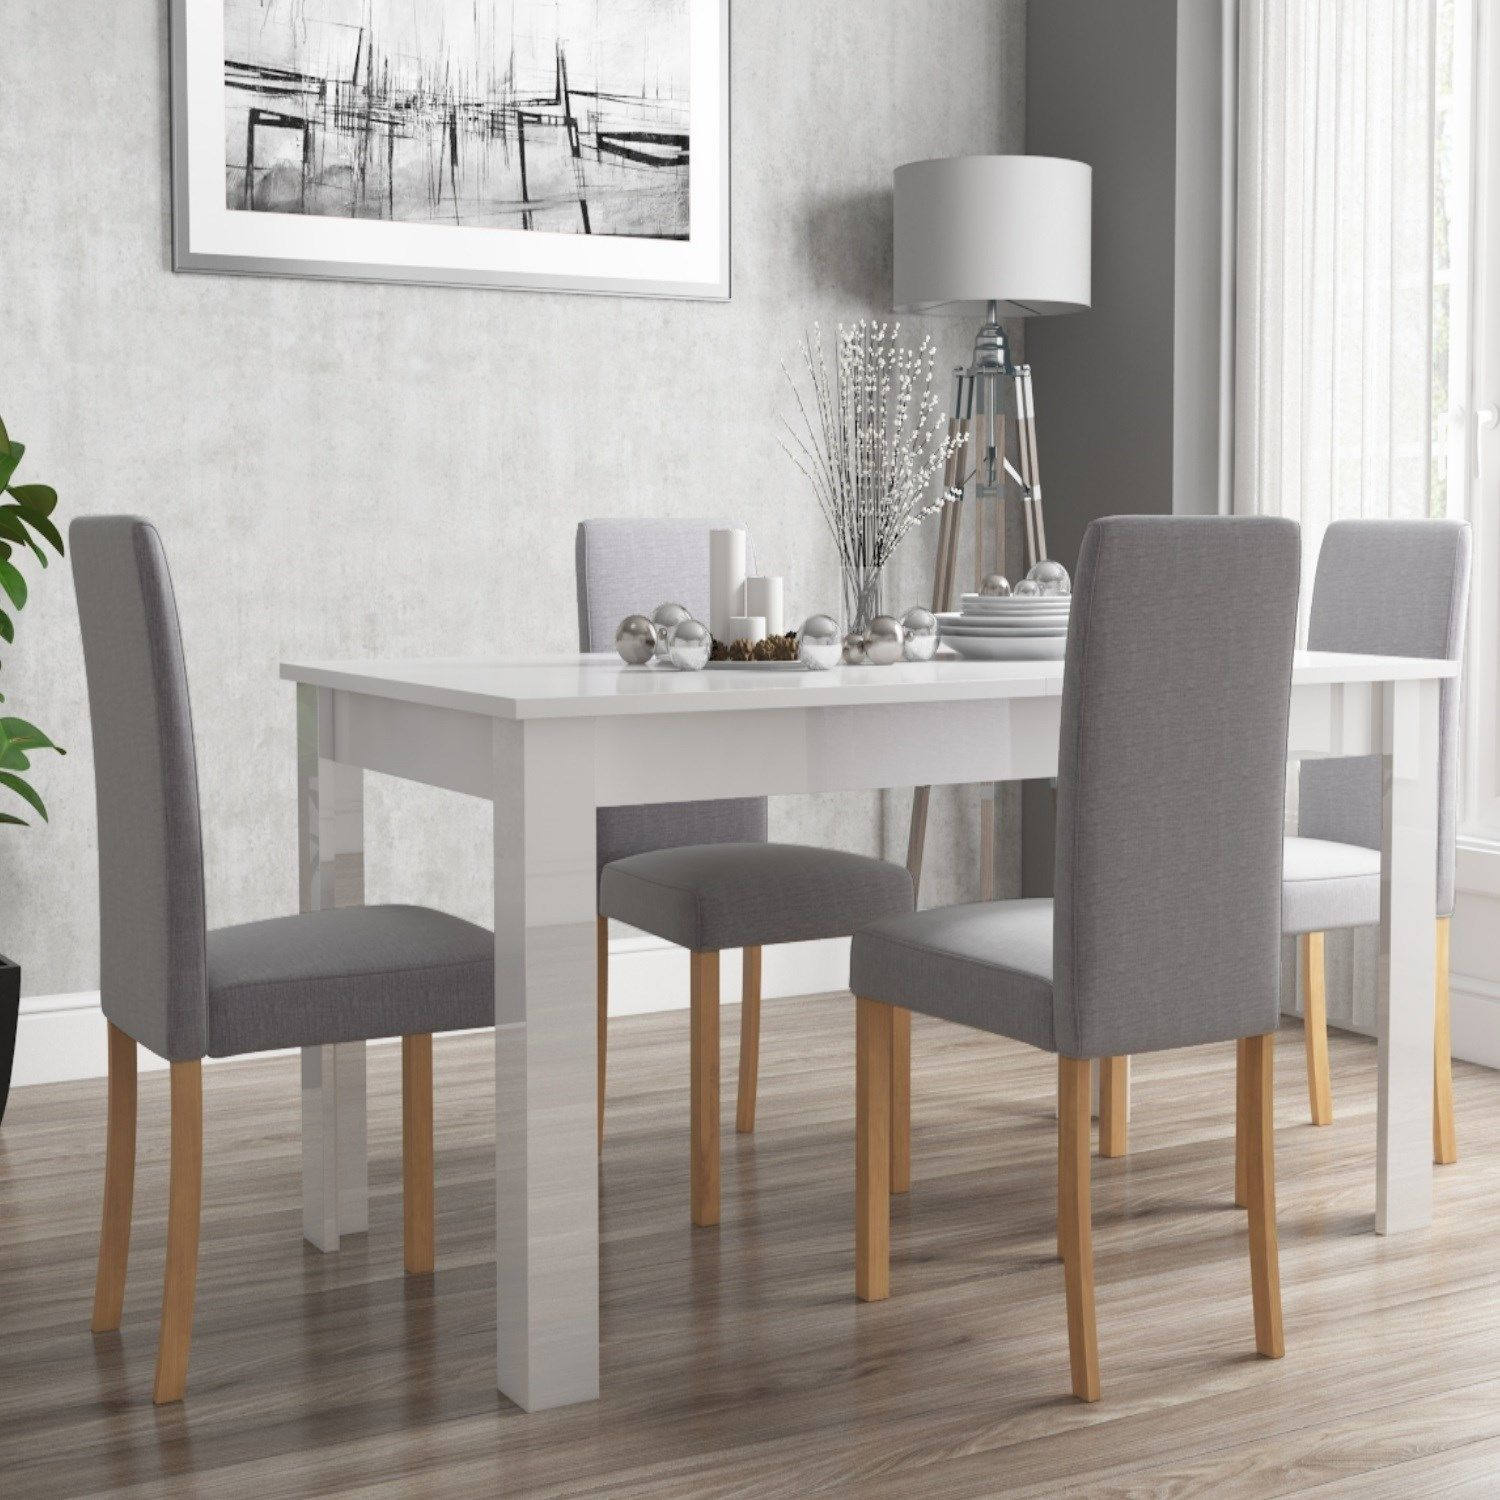 Vivienne White High Gloss Dining Table + 4 Grey Fabric